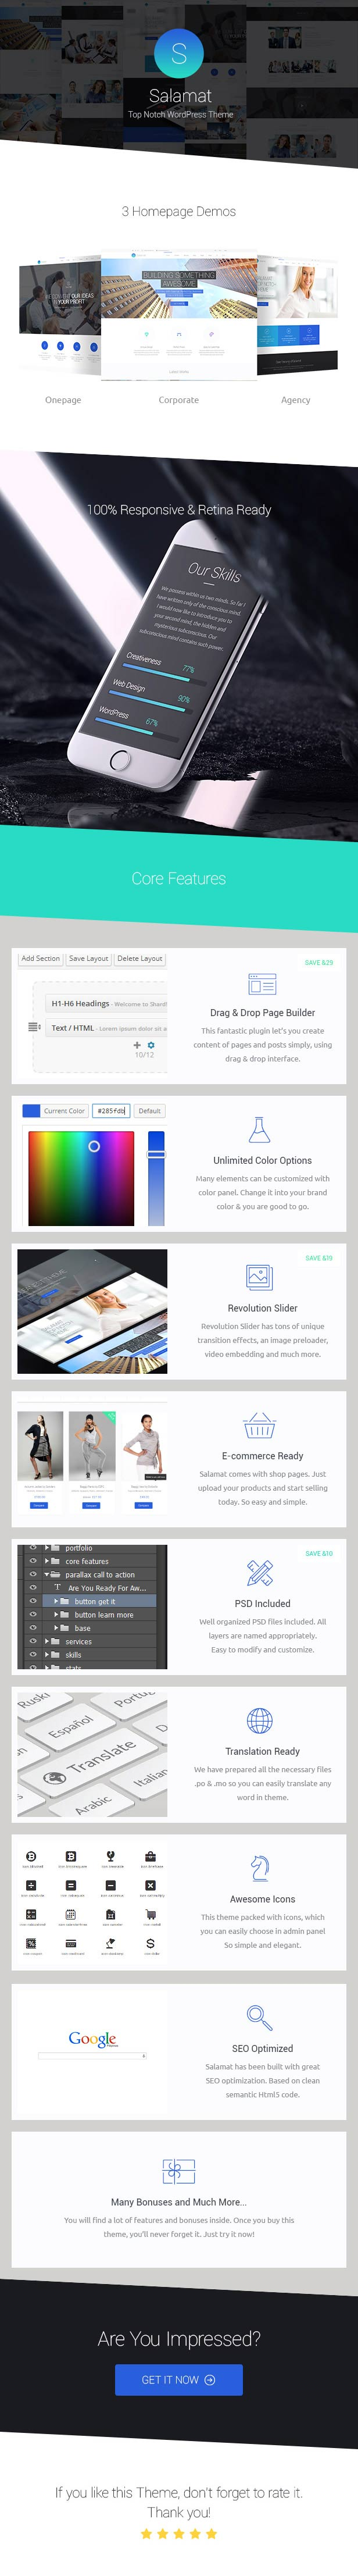 Salamat - Multipurpose WordPress Theme